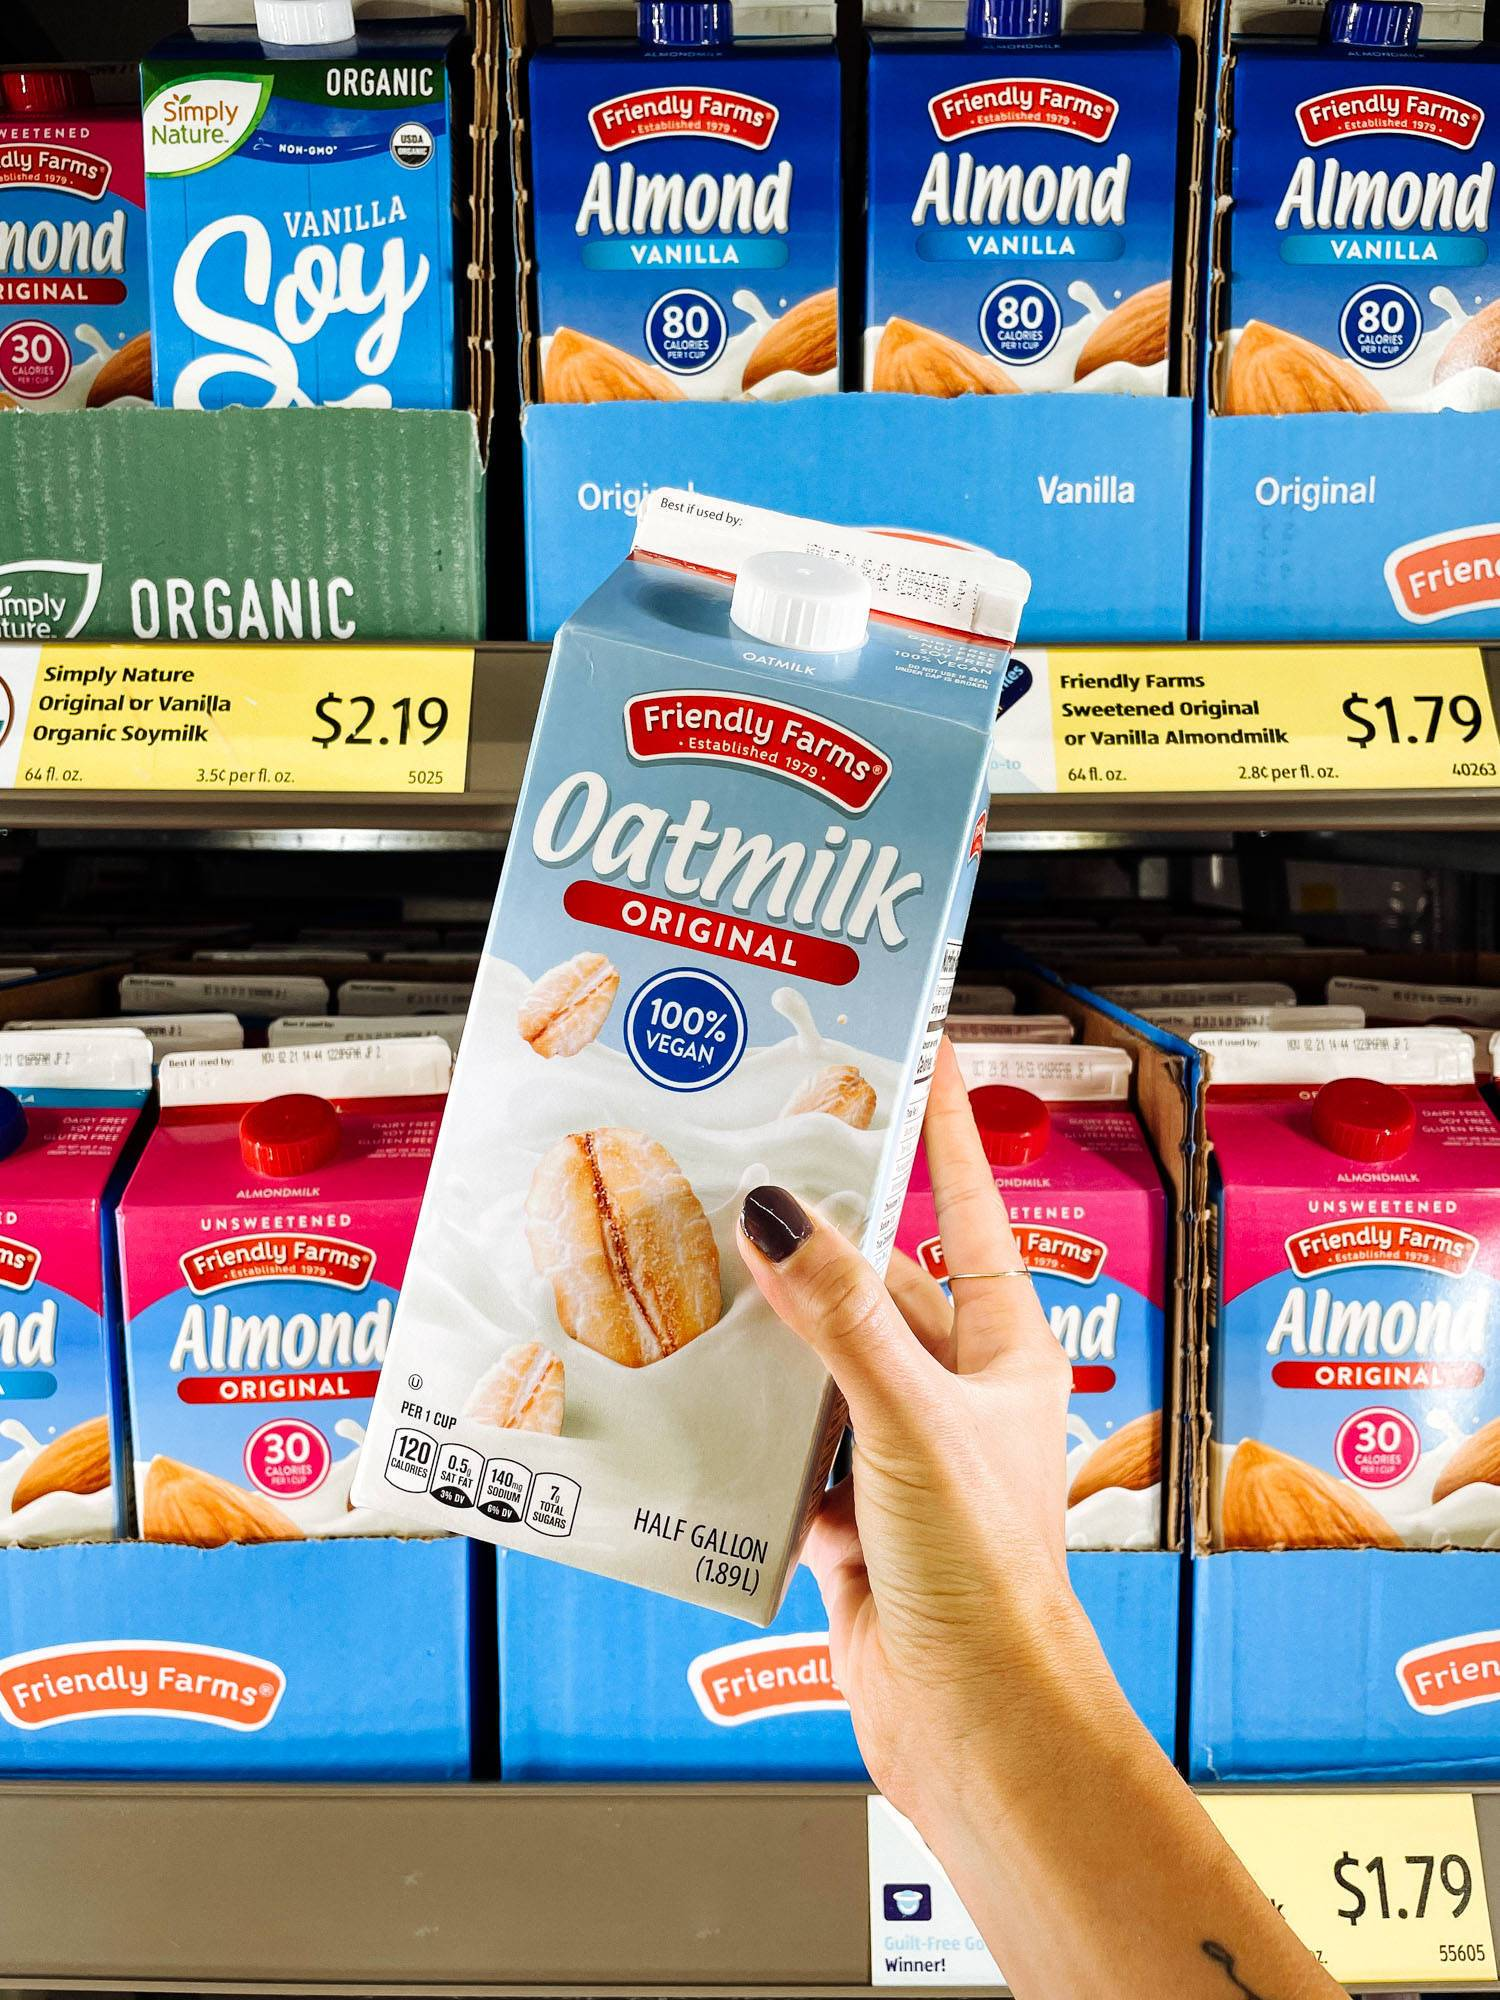 White hand holding oatmilk from ALDI.